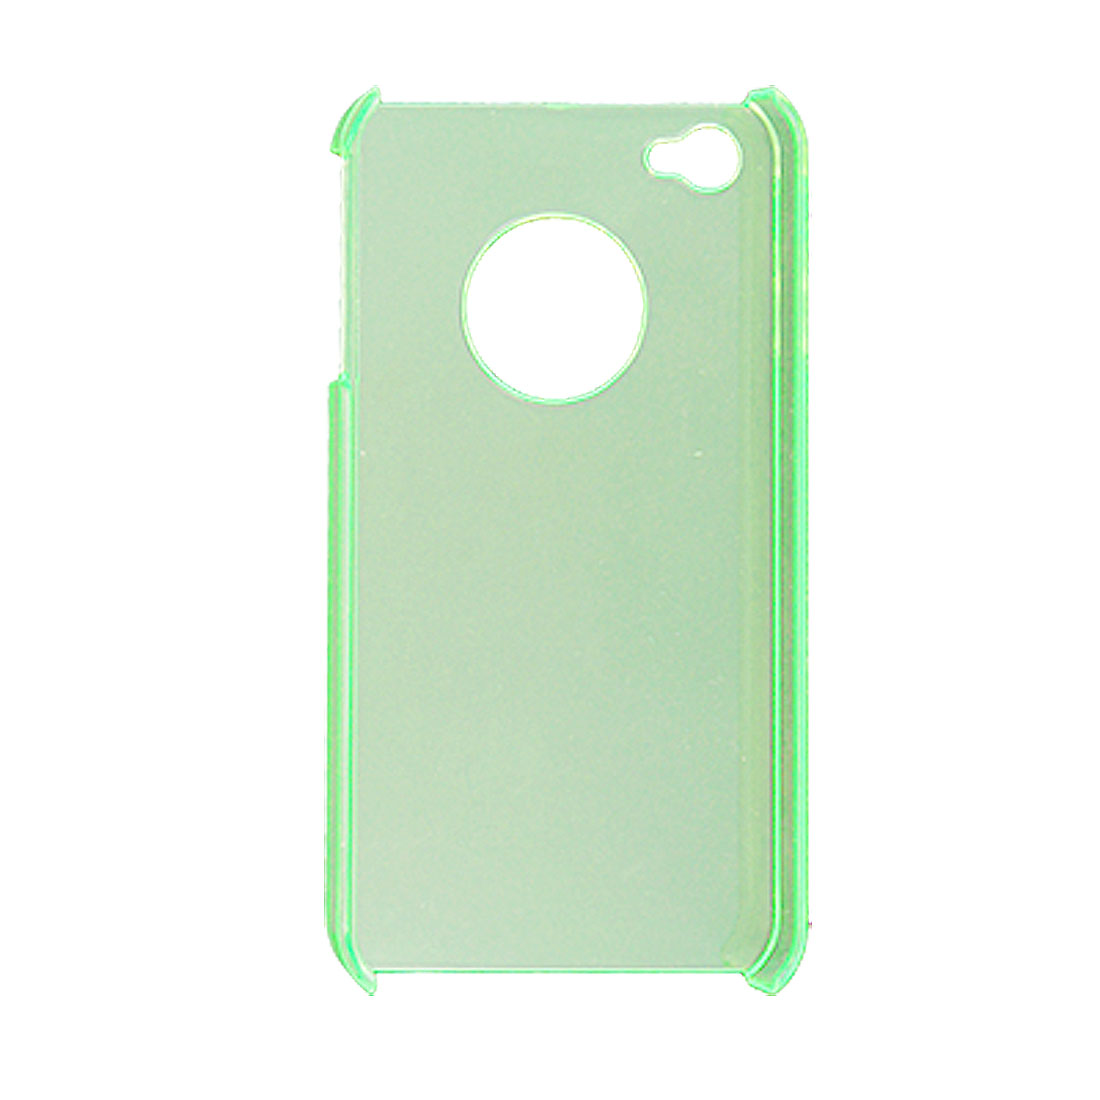 Clear Green Hard Plastic Cover Protector for iPhone 4 4G